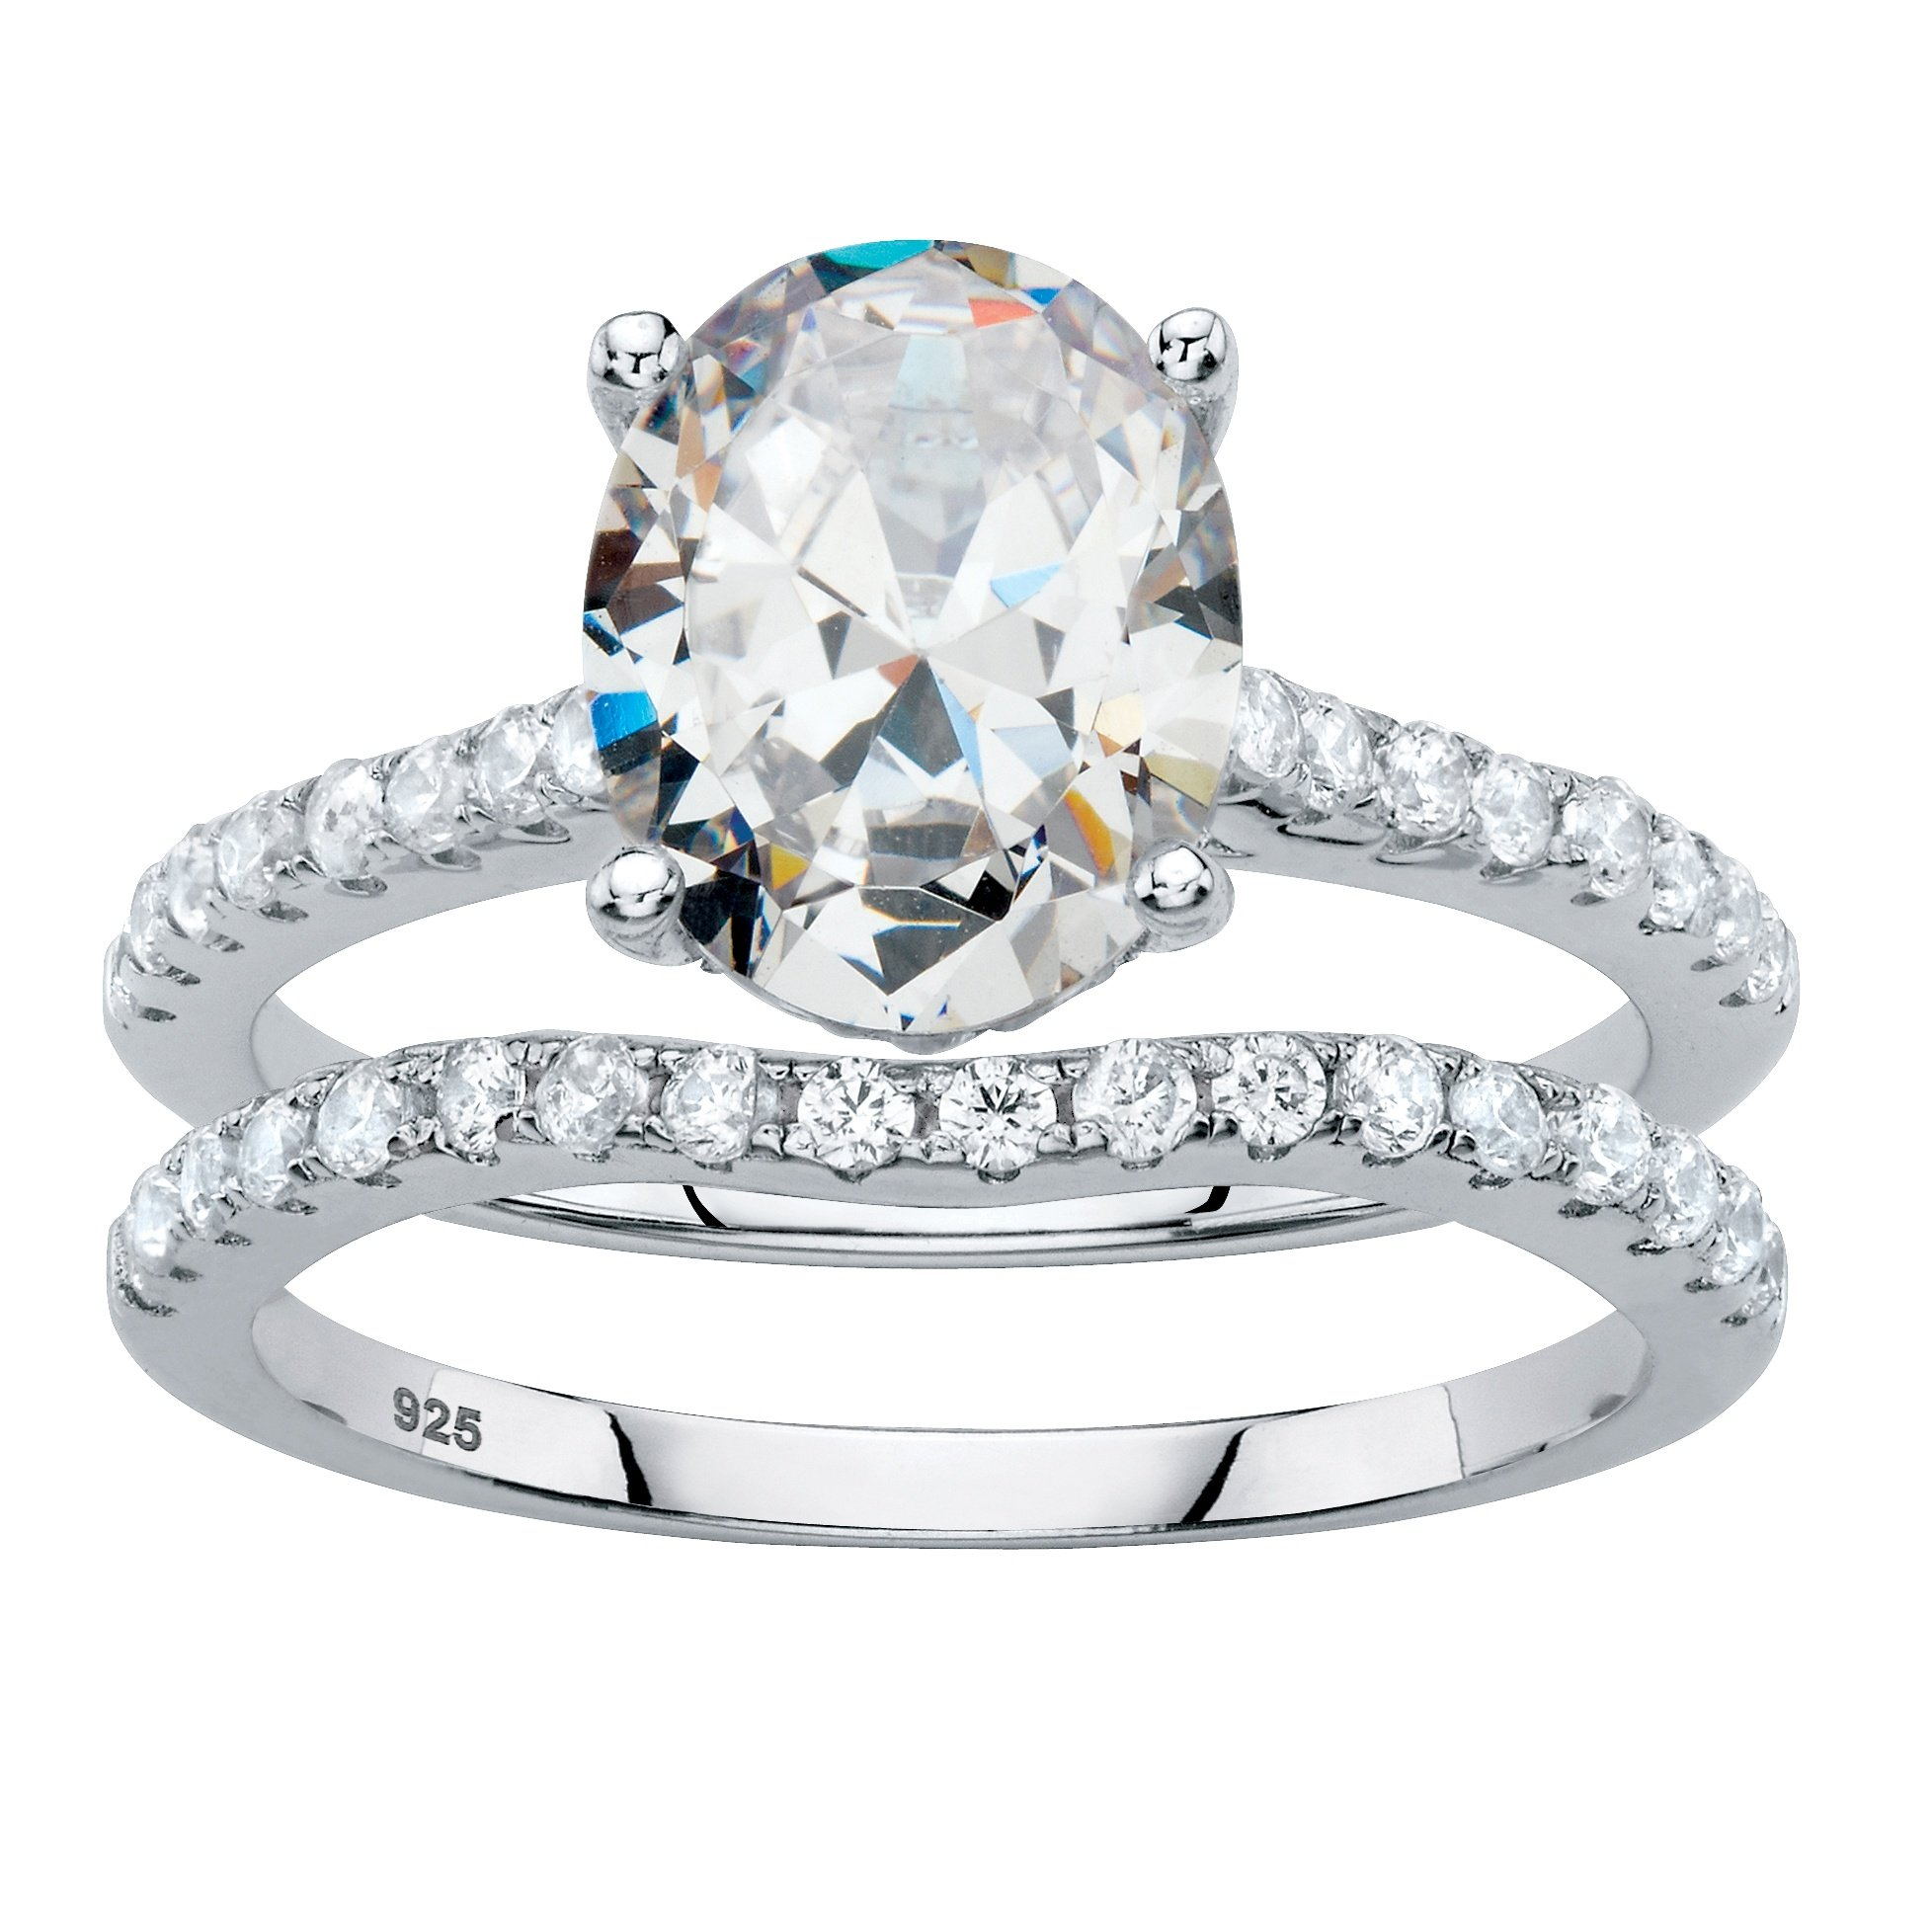 Platinum over Sterling Silver Oval Cut and Round Cubic Zirconia 2 Pair Bridal Ring Set Size 7 by Palm Beach Jewelry